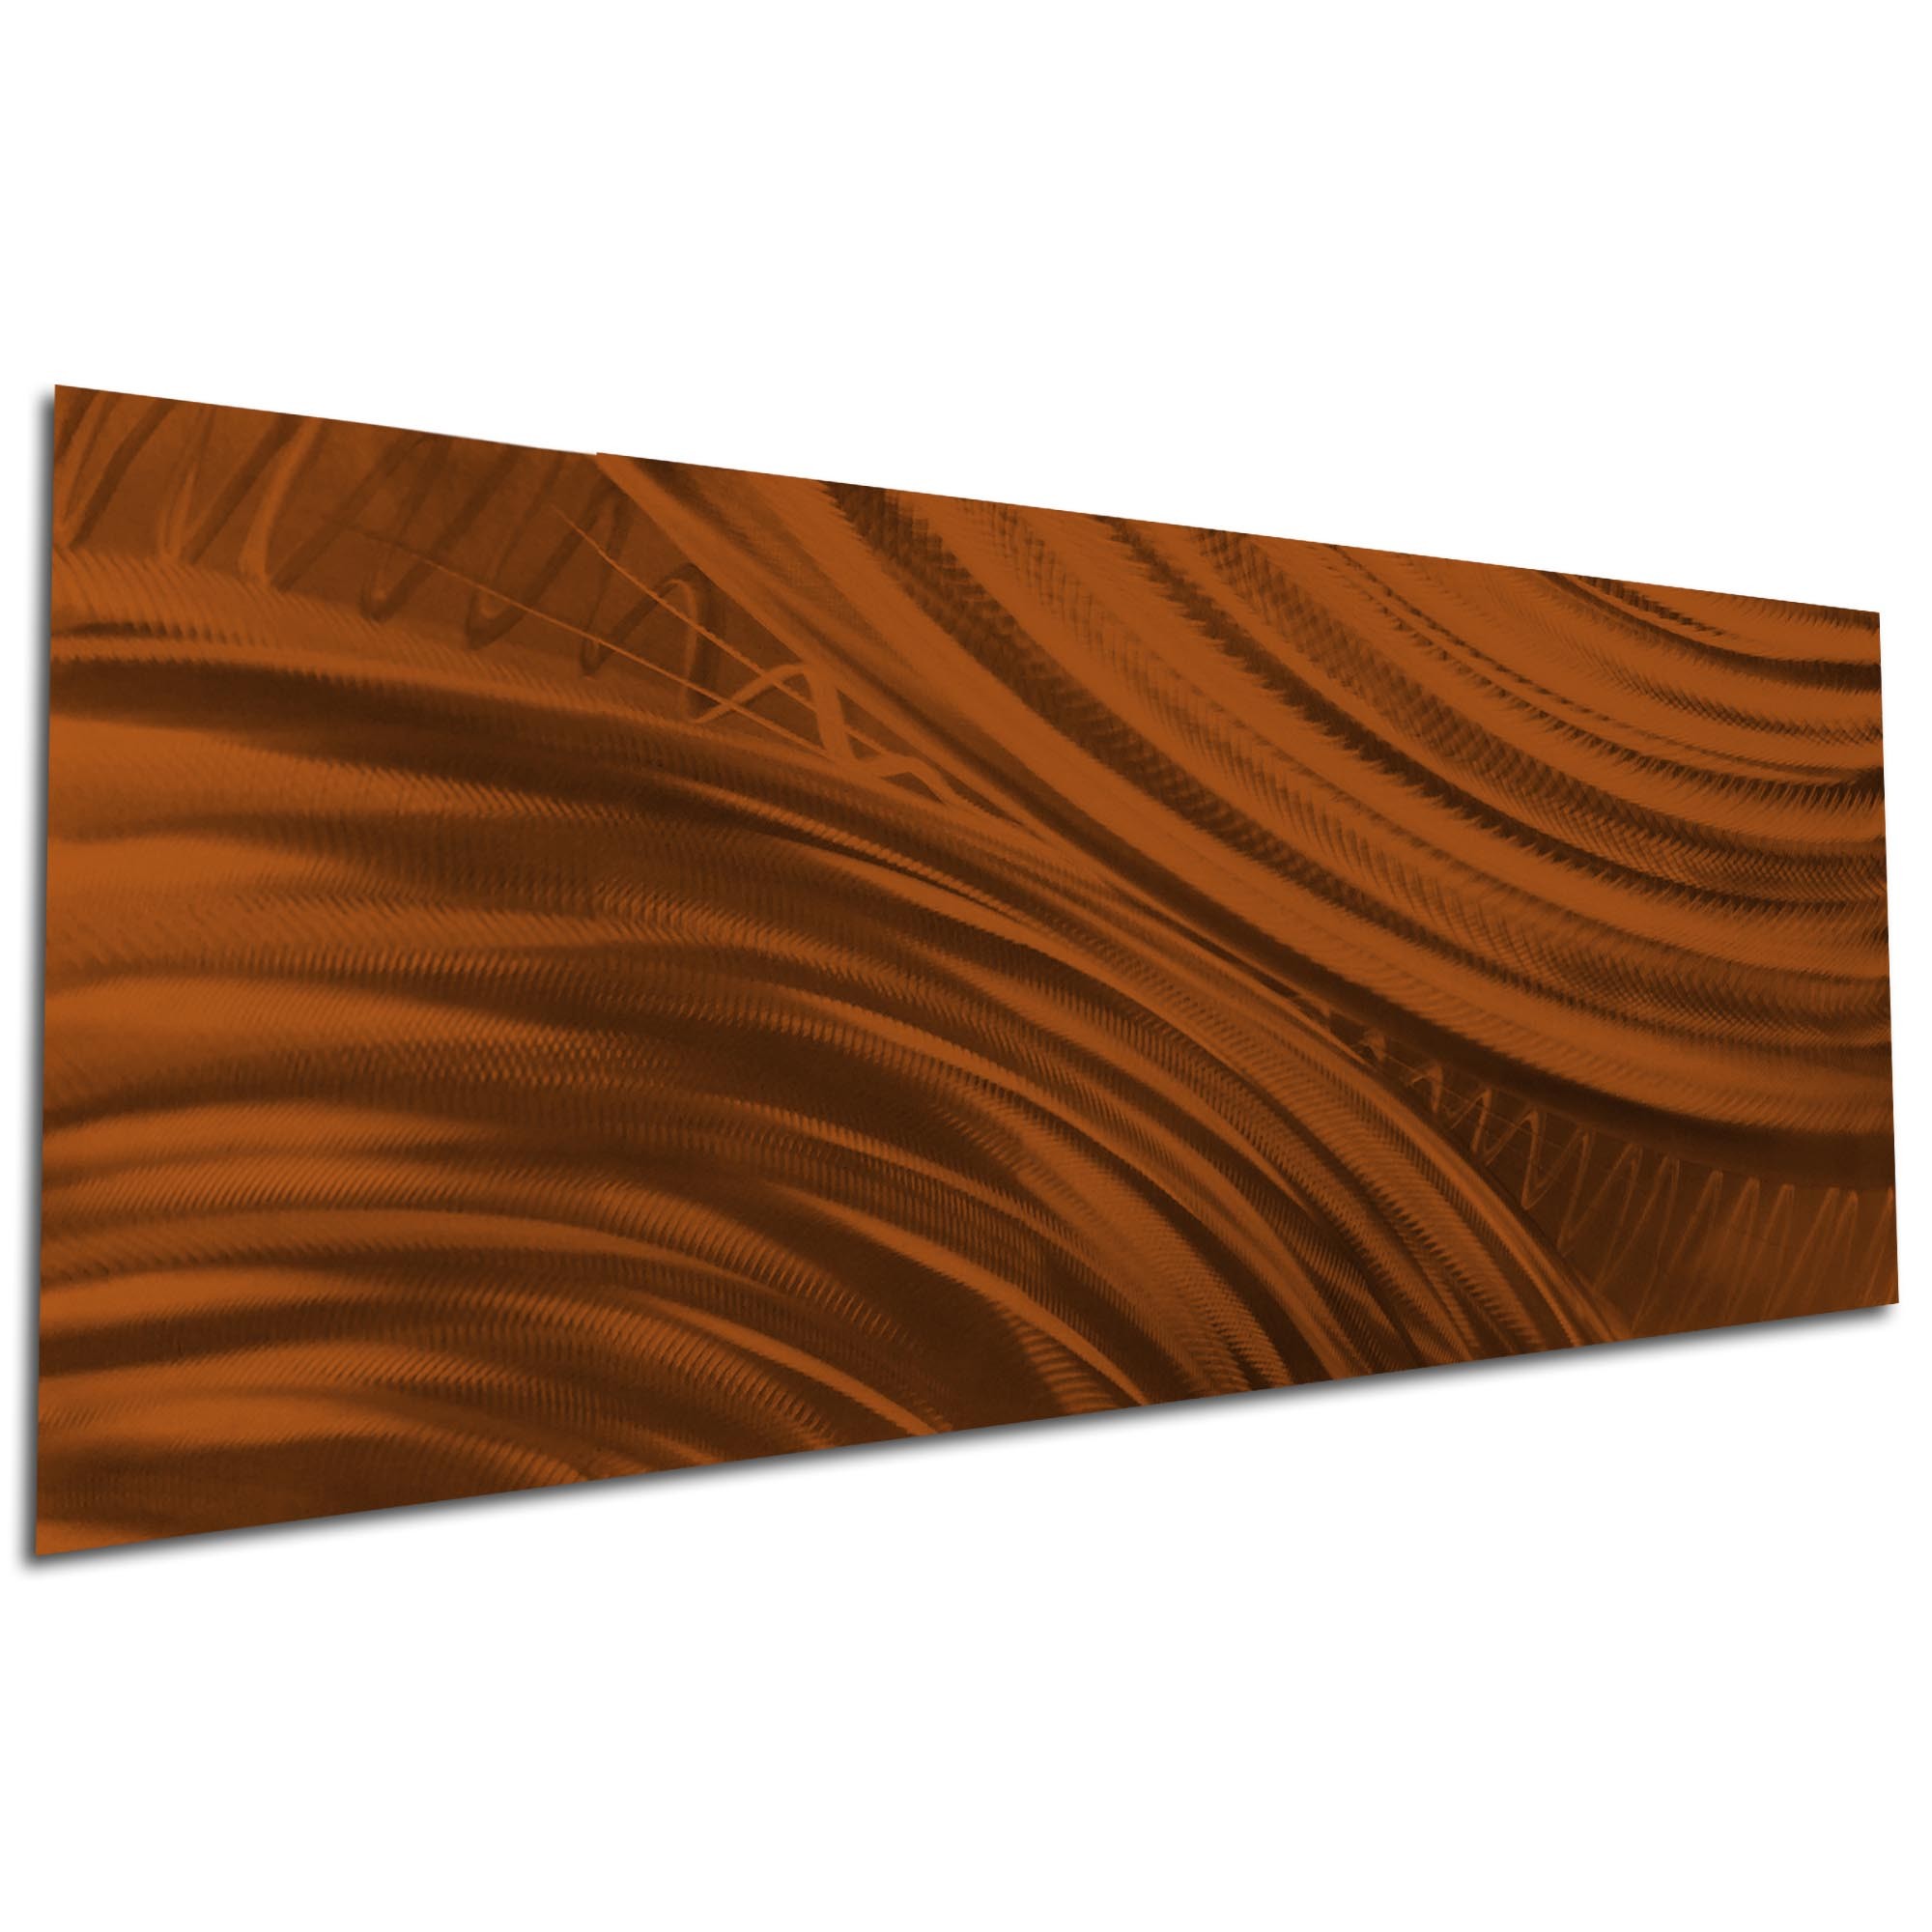 Moment of Impact Brown by Helena Martin - Original Abstract Art on Ground and Painted Metal - Image 3